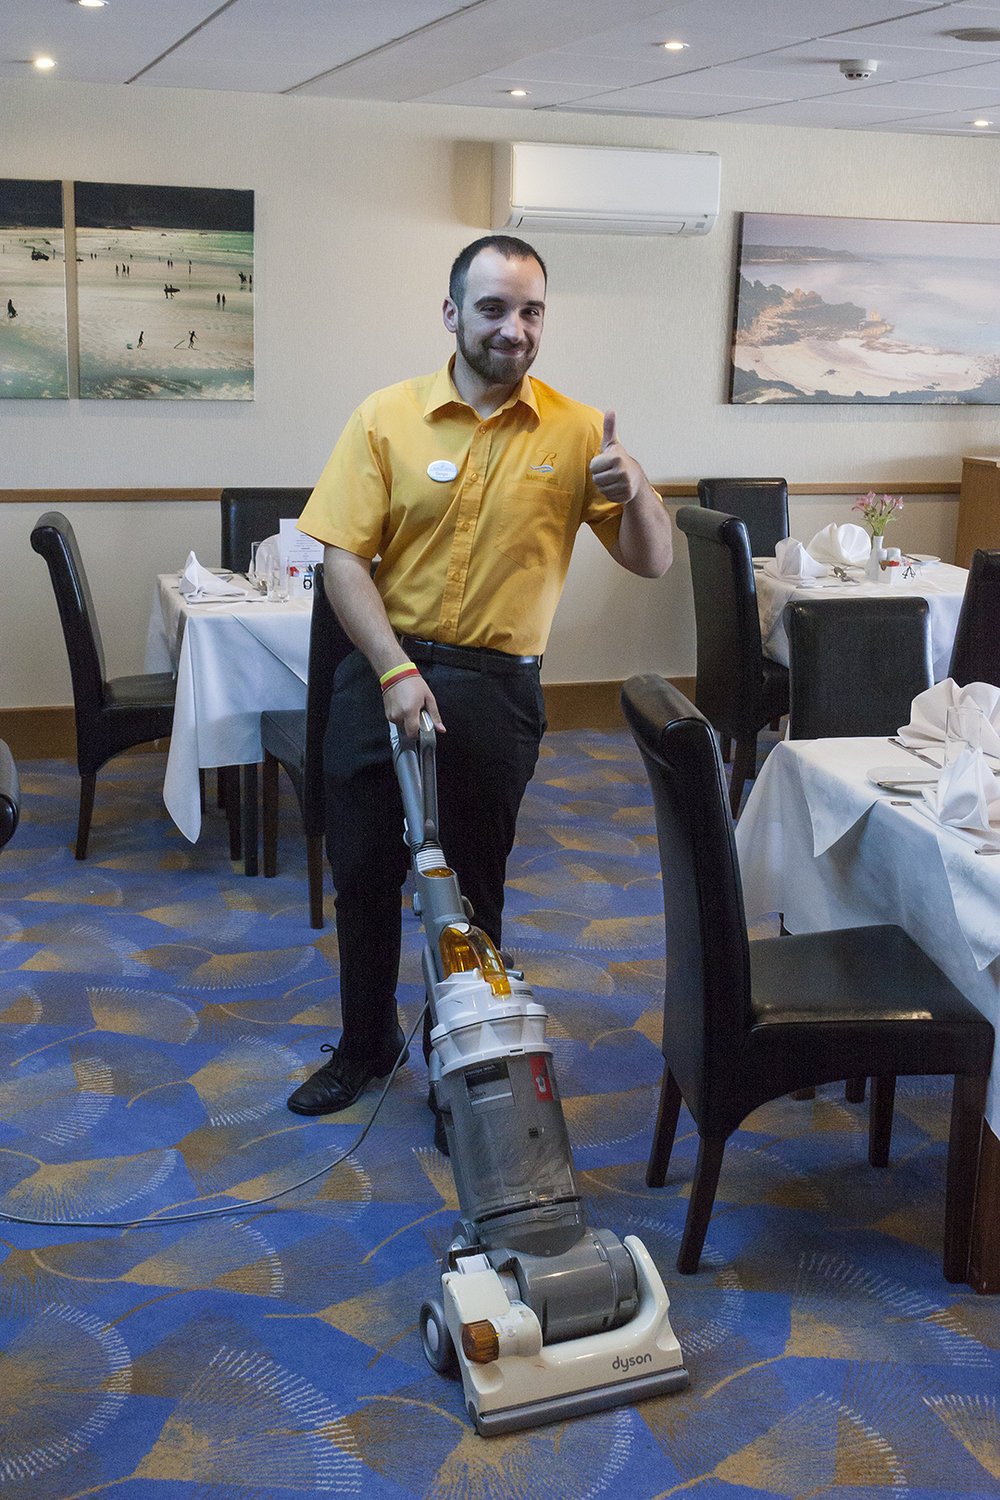 biarritz staff cleaning.jpg